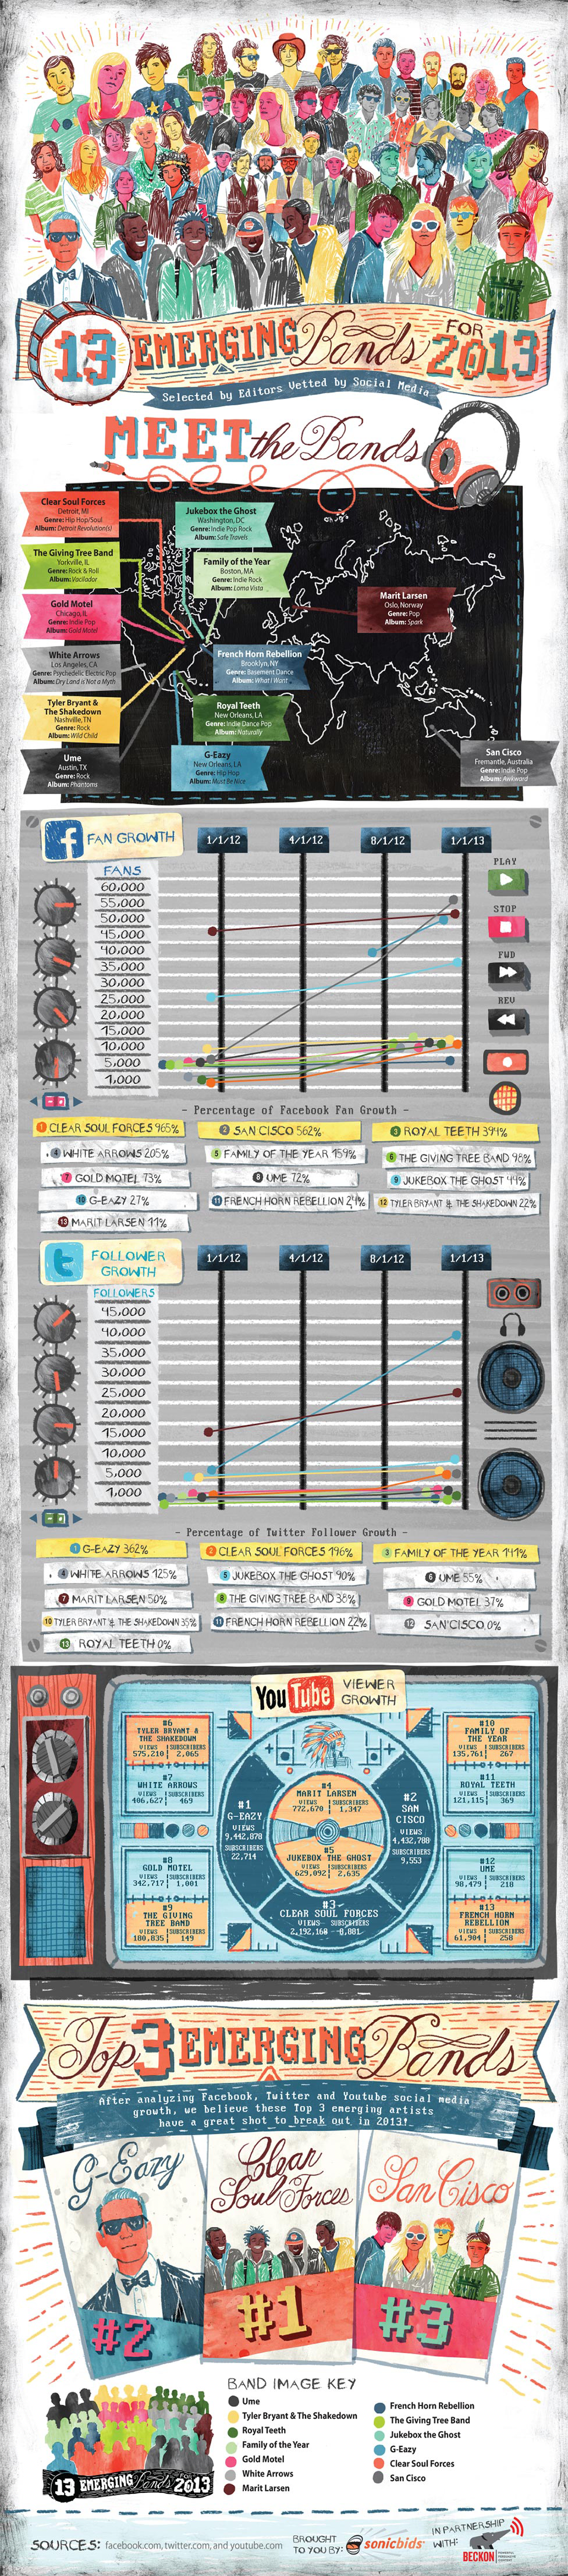 13 Emerging Bands for 2013 Infographic